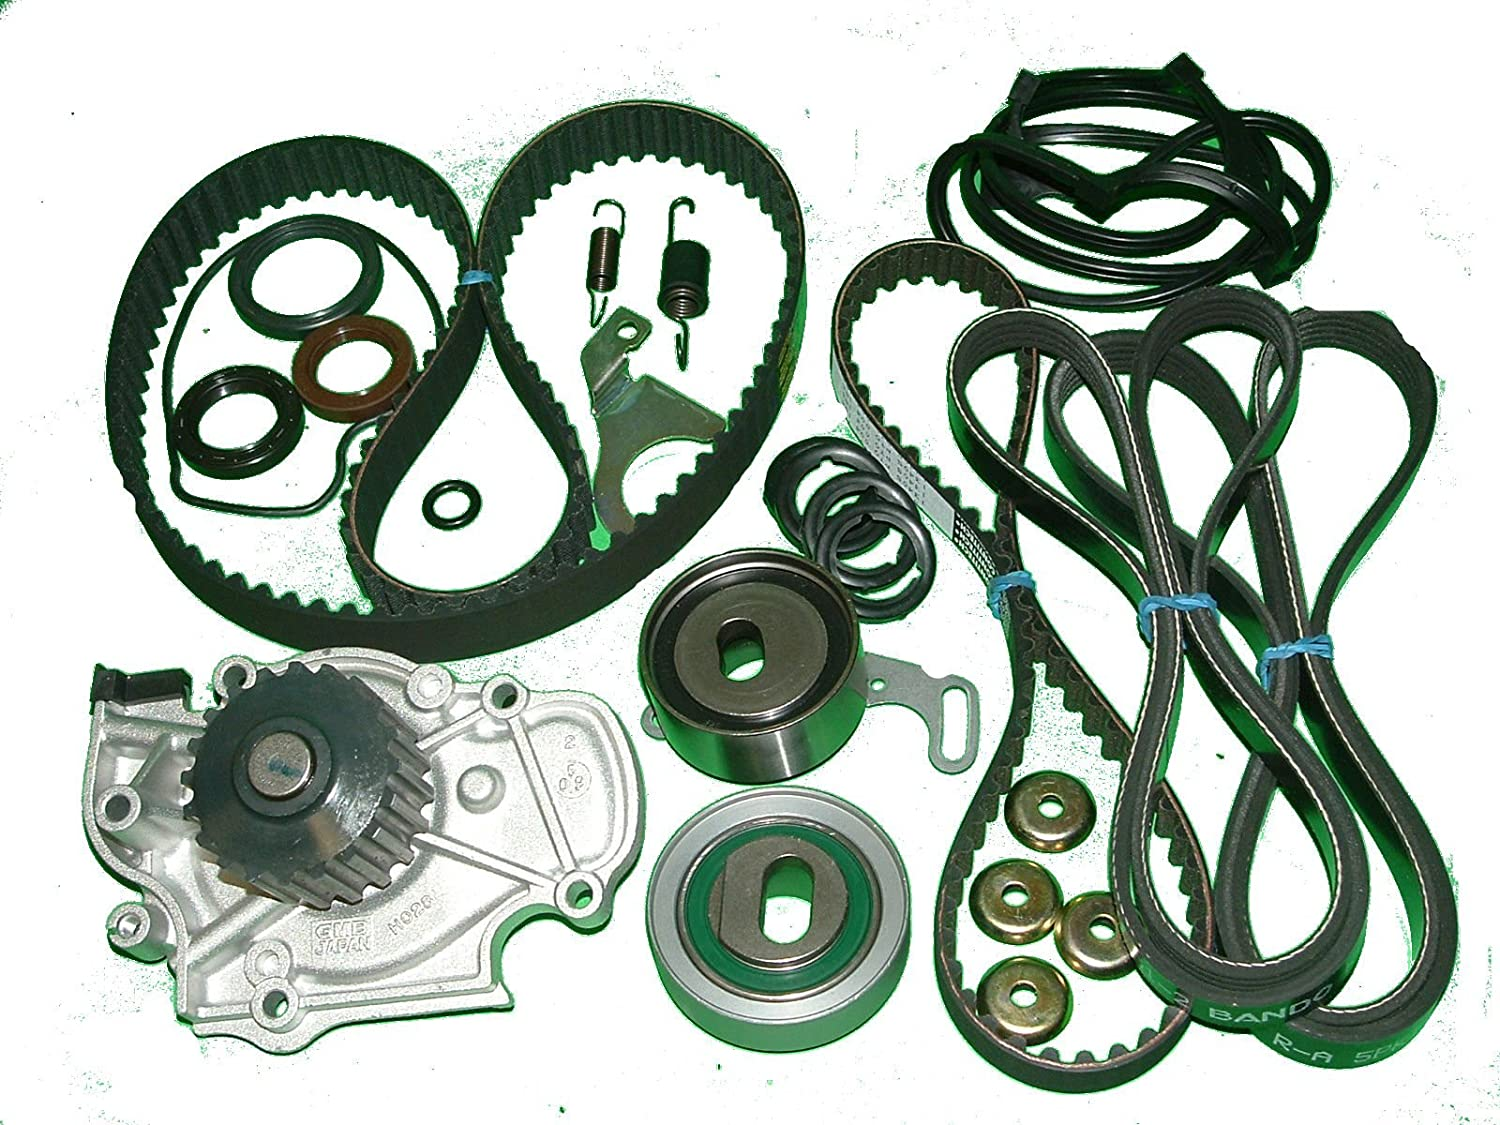 Tbk Timing Belt Kit Acura 1997 To 1999 Cl 22and 23 Isuzu Rodeo Water Pump Four Cylinder Engines Balance Shaft Gaskets Seals Drive Belts